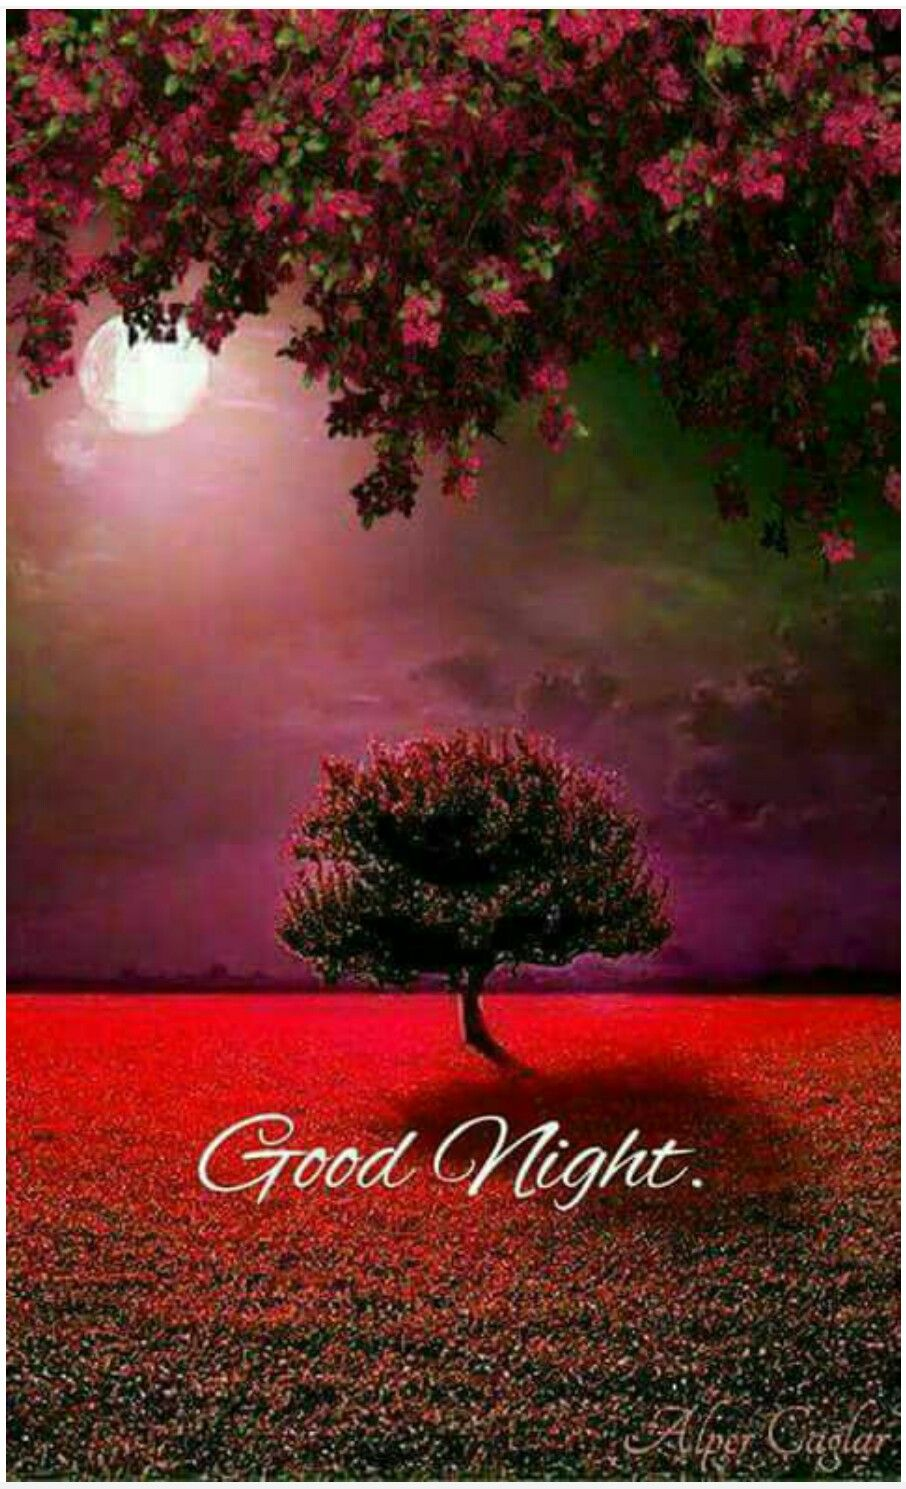 Pin by gopesh avasthi on night nature nature pictures - Good night nature pic ...